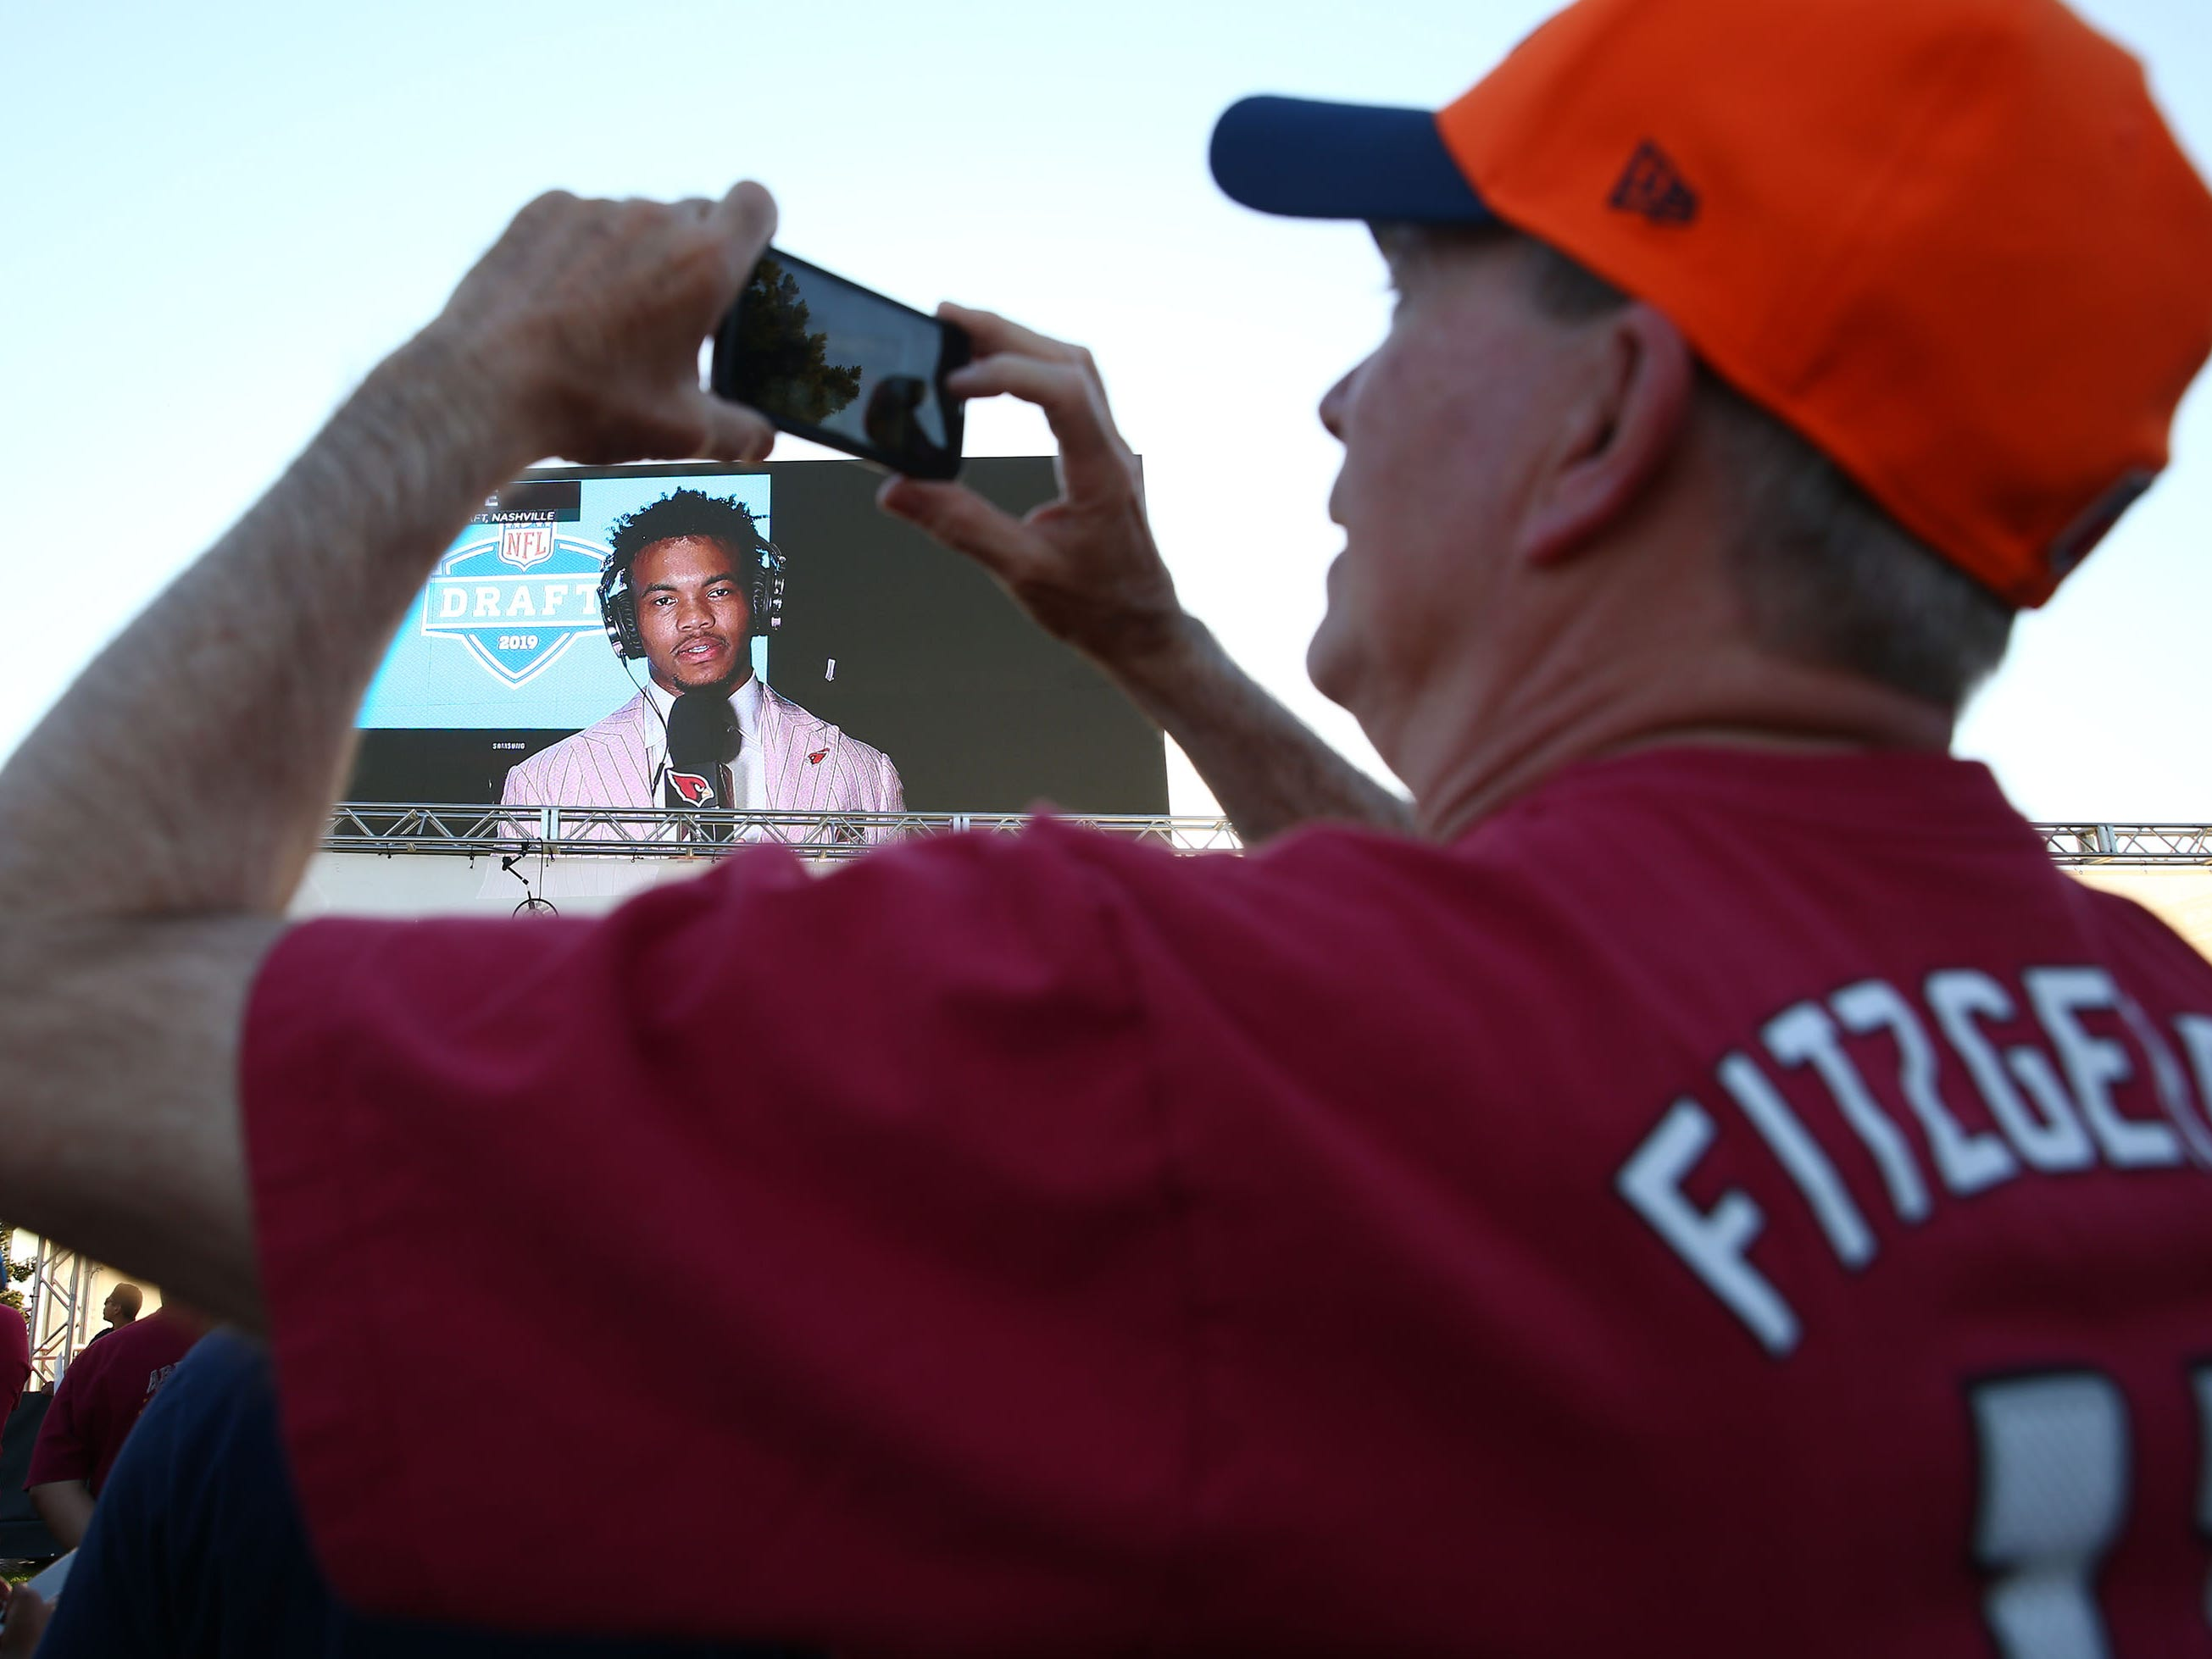 Larry Payton of Glendale, Ariz., takes a picture as the Arizona Cardinals number one draft pick quarterback Kyler Murray from Oklahoma talks to the fans on the Great lawn during the NFL Draft watch party at State Farm Stadium on Apr. 25, 2019 in Glendale, Ariz.